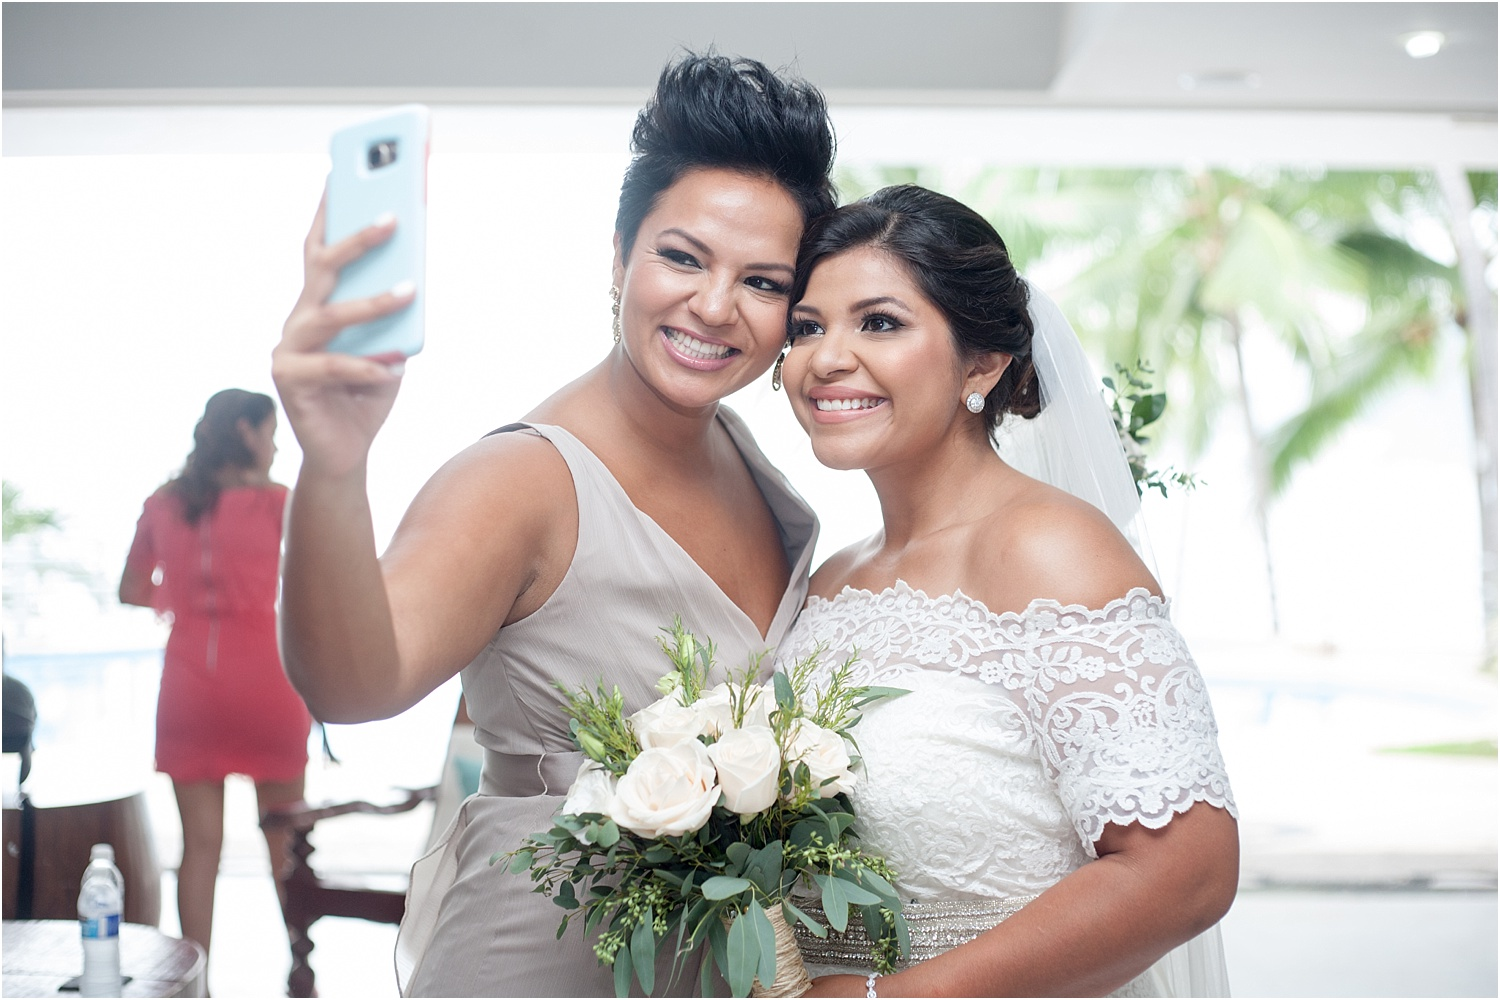 bride's maid and bride selfie - wedding day photography